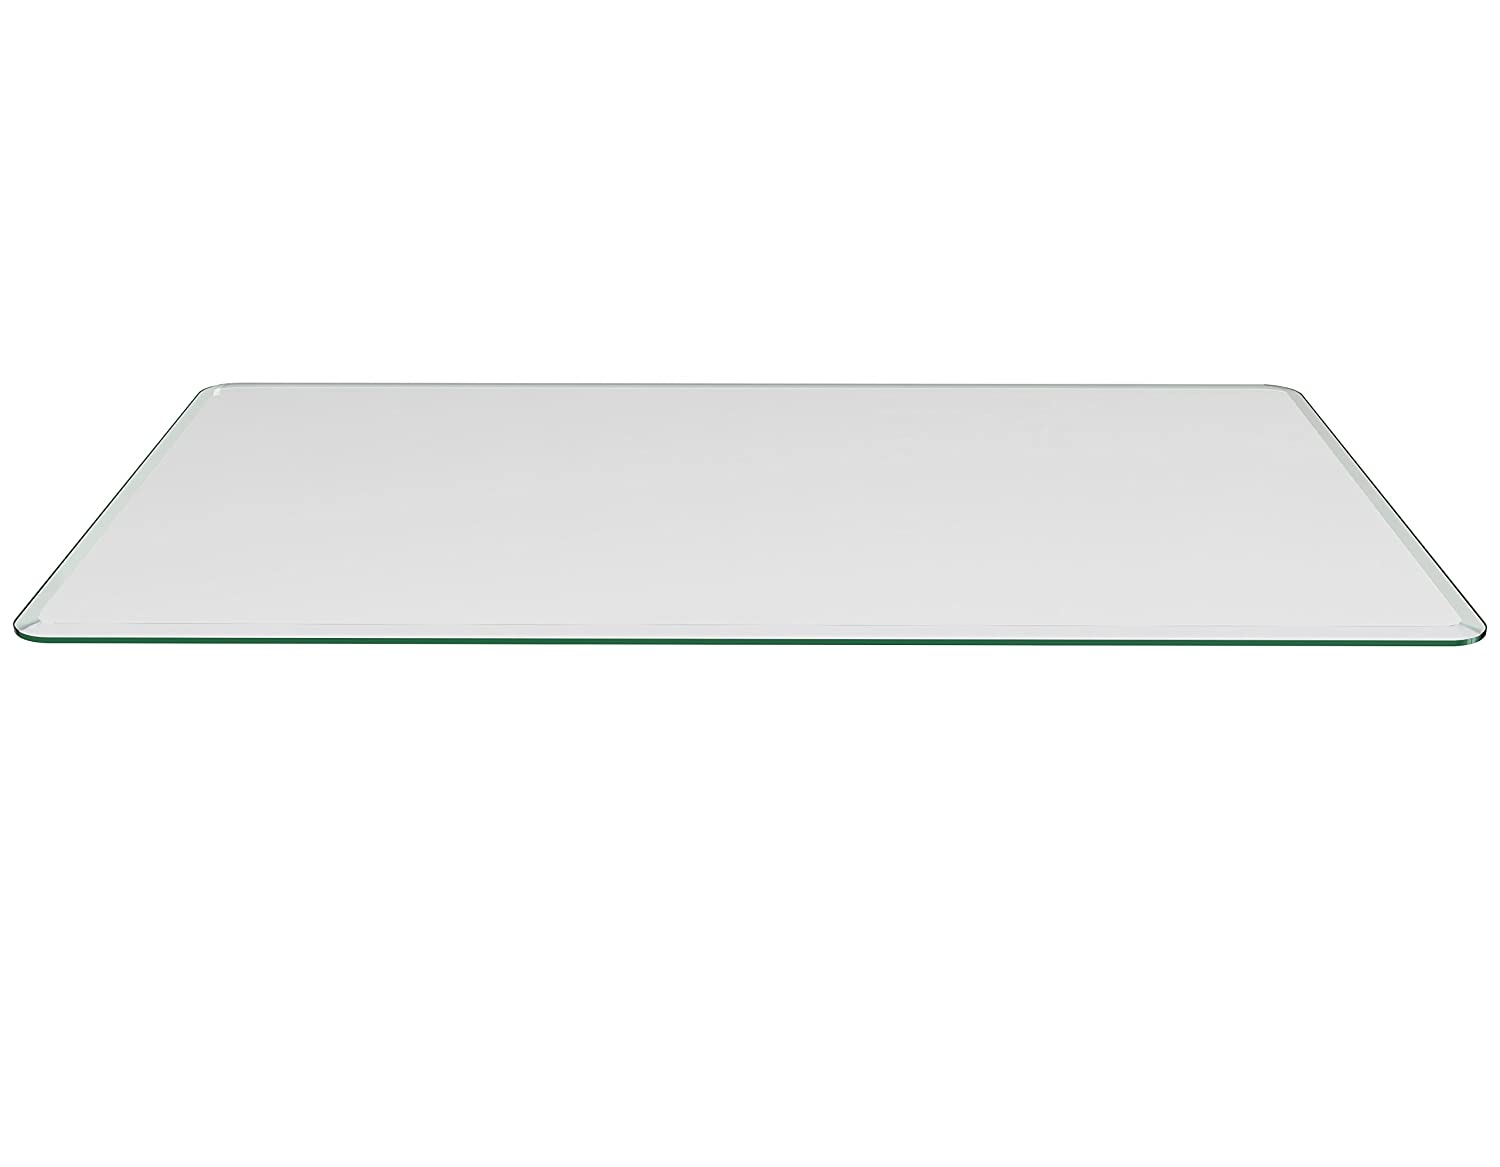 Milan 16 x 52 Rectangle Glass Top, 3 8 Thick with 1 Bevel Edge